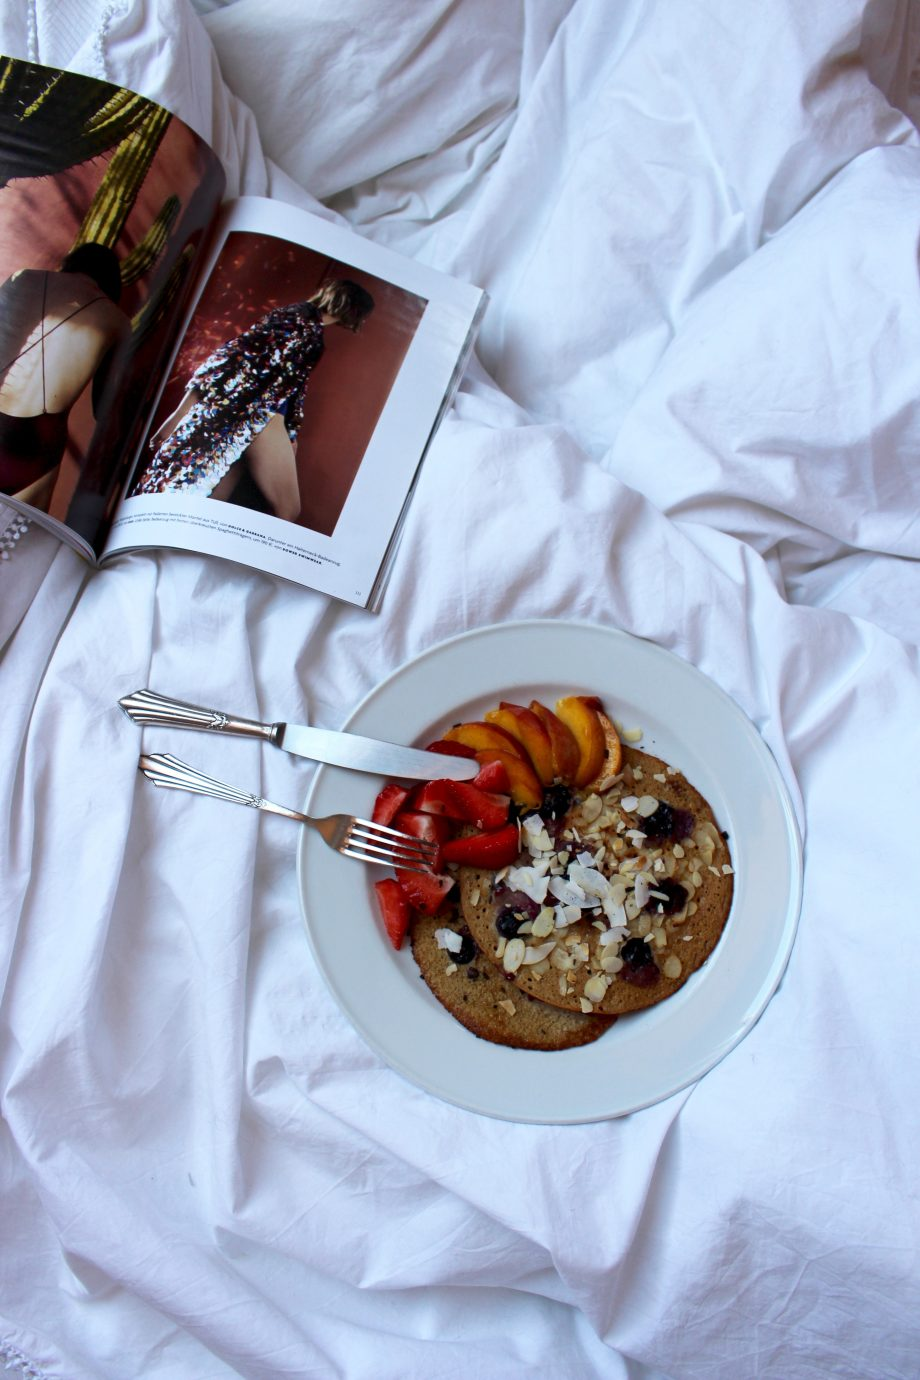 Pancakes in Bed | 28.05.2017